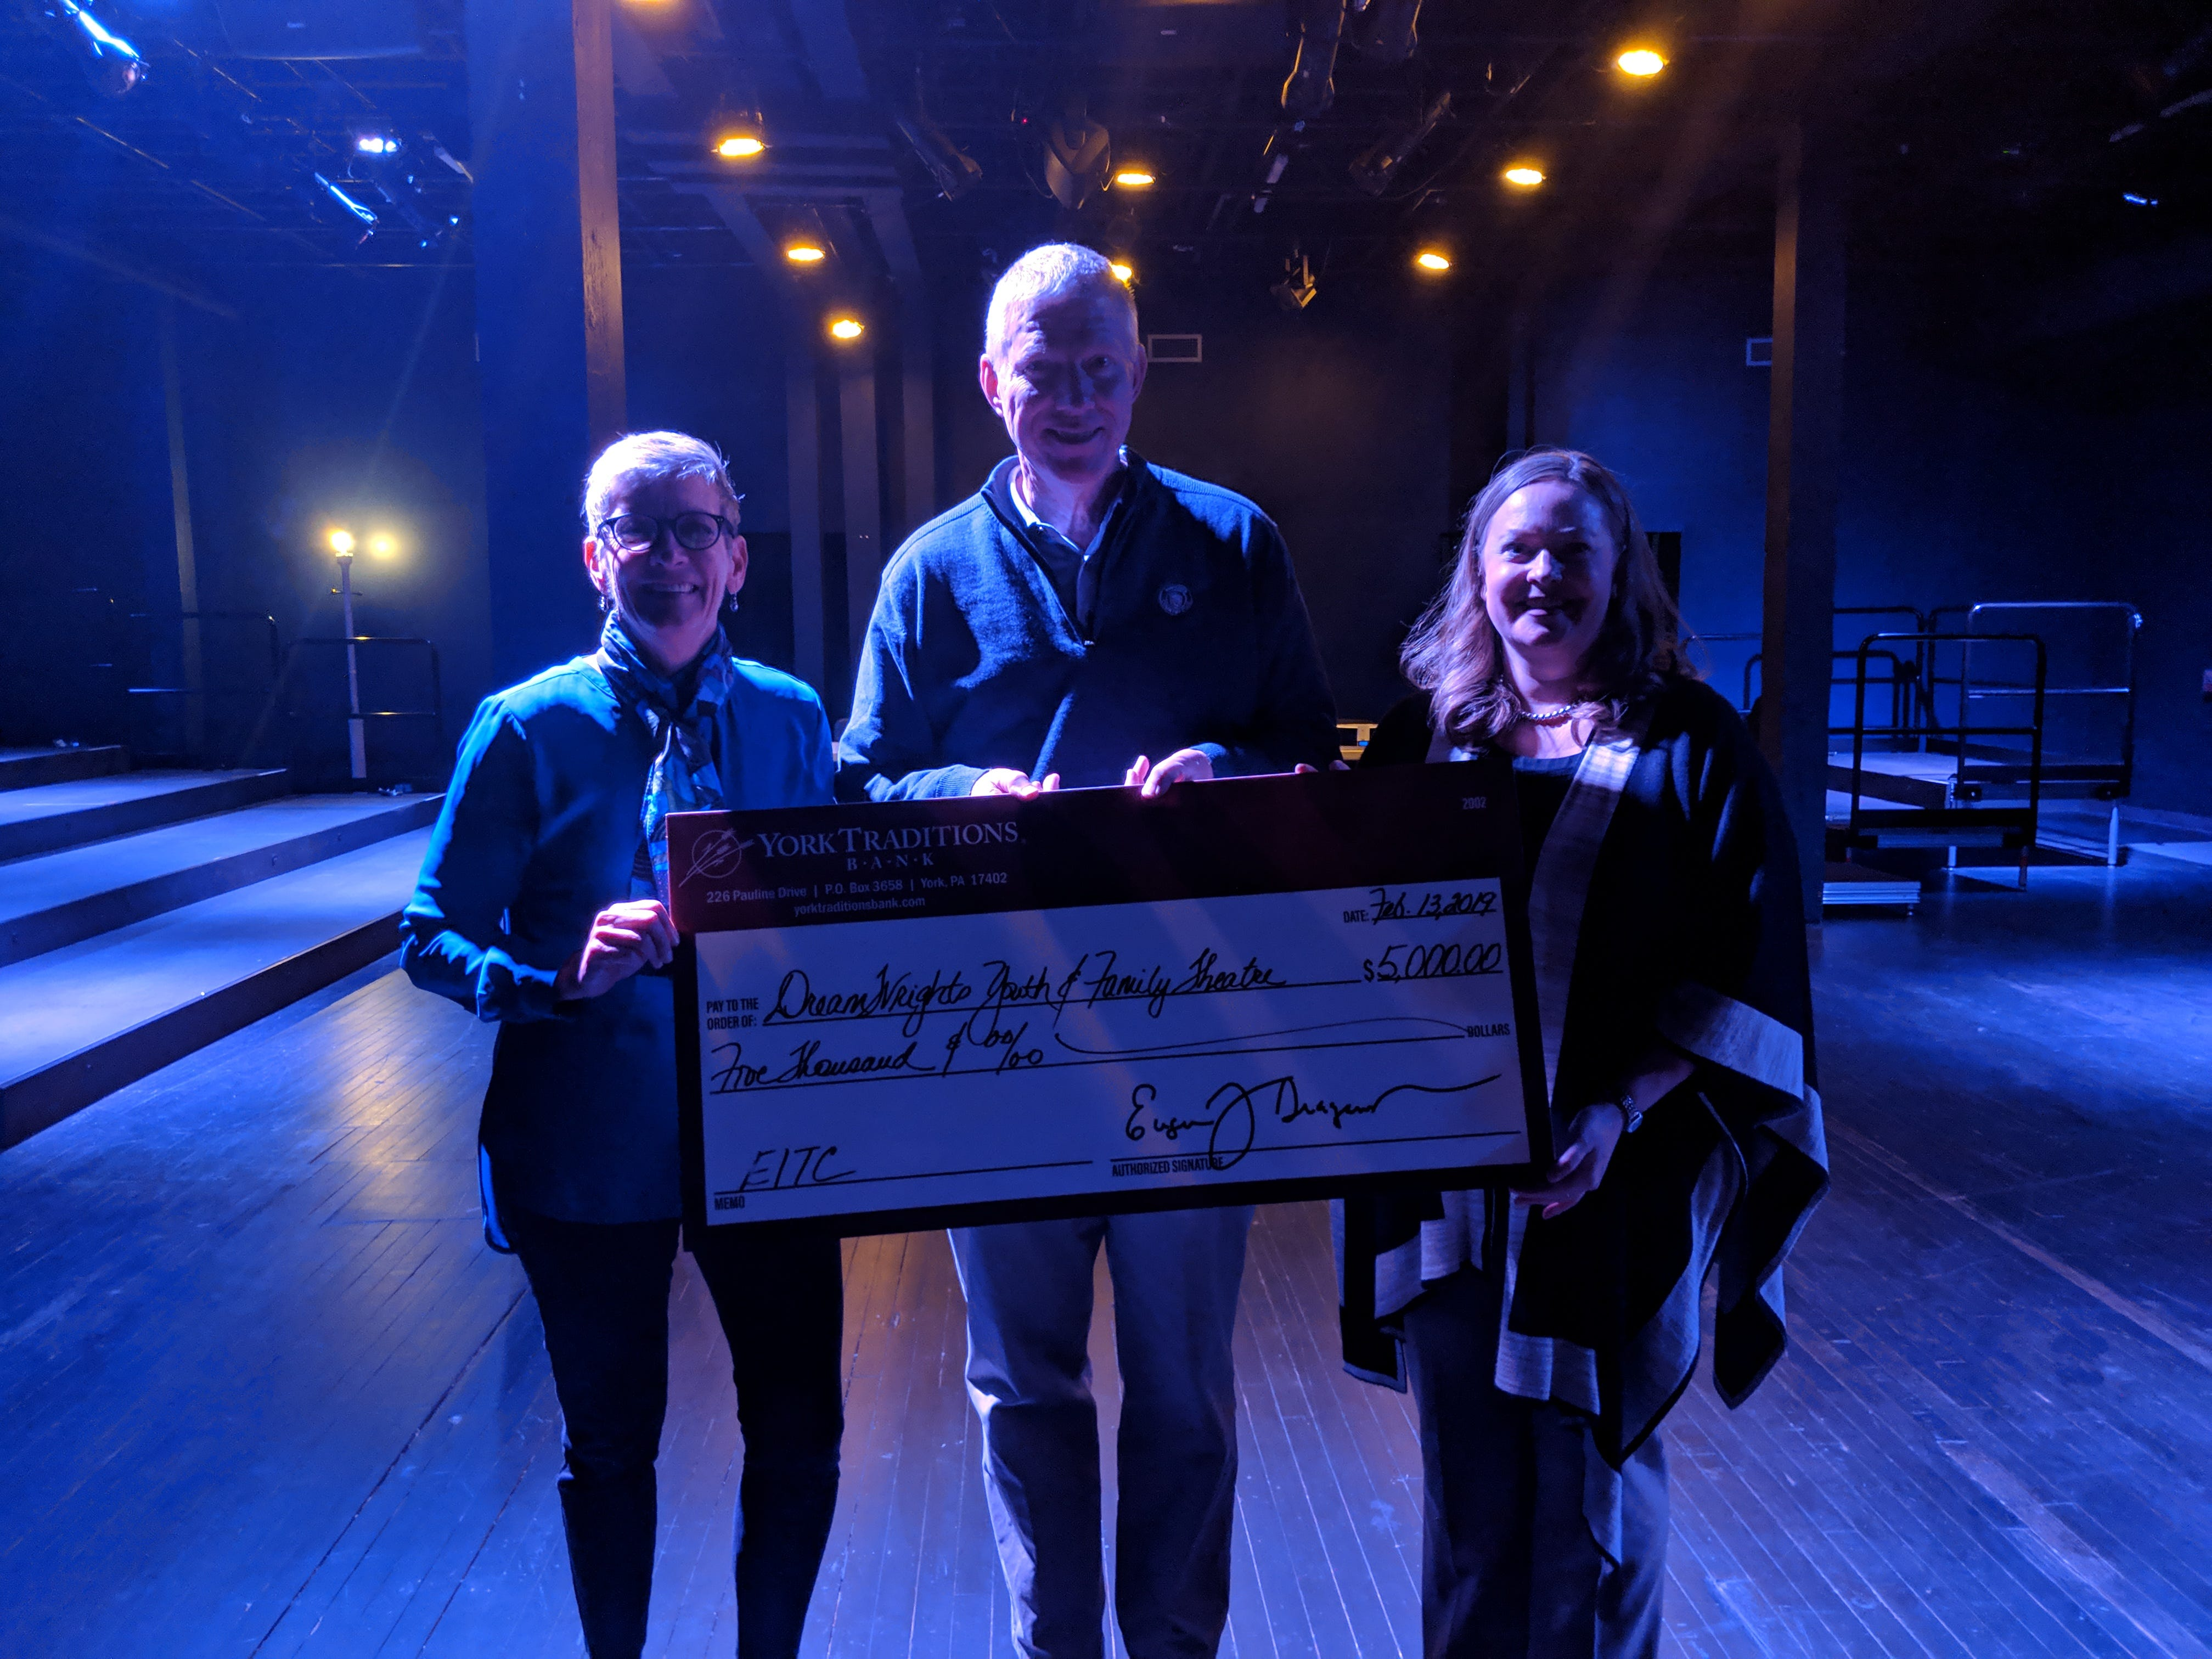 On Wednesday, Feb. 13, 2019, DreamWrights Center for Community Arts received a generous gift of support. John Blecher, CFO of York Traditions Bank, presented a $5,000 check as part of the Bank's EITC gift to DreamWrights. DreamWrights Executive Director Ann Davis (left), and Artistic Director Laurie Riffe (right) accept a check from York Traditions Bank's John Blecher to sponsor the 2019 DreamWrights Studio Season.This gift allows them to sponsor the entire run of 2019 shows in the Studio. A full list of DreamWrights' 2019 season is available at DreamWrights.org. submitted